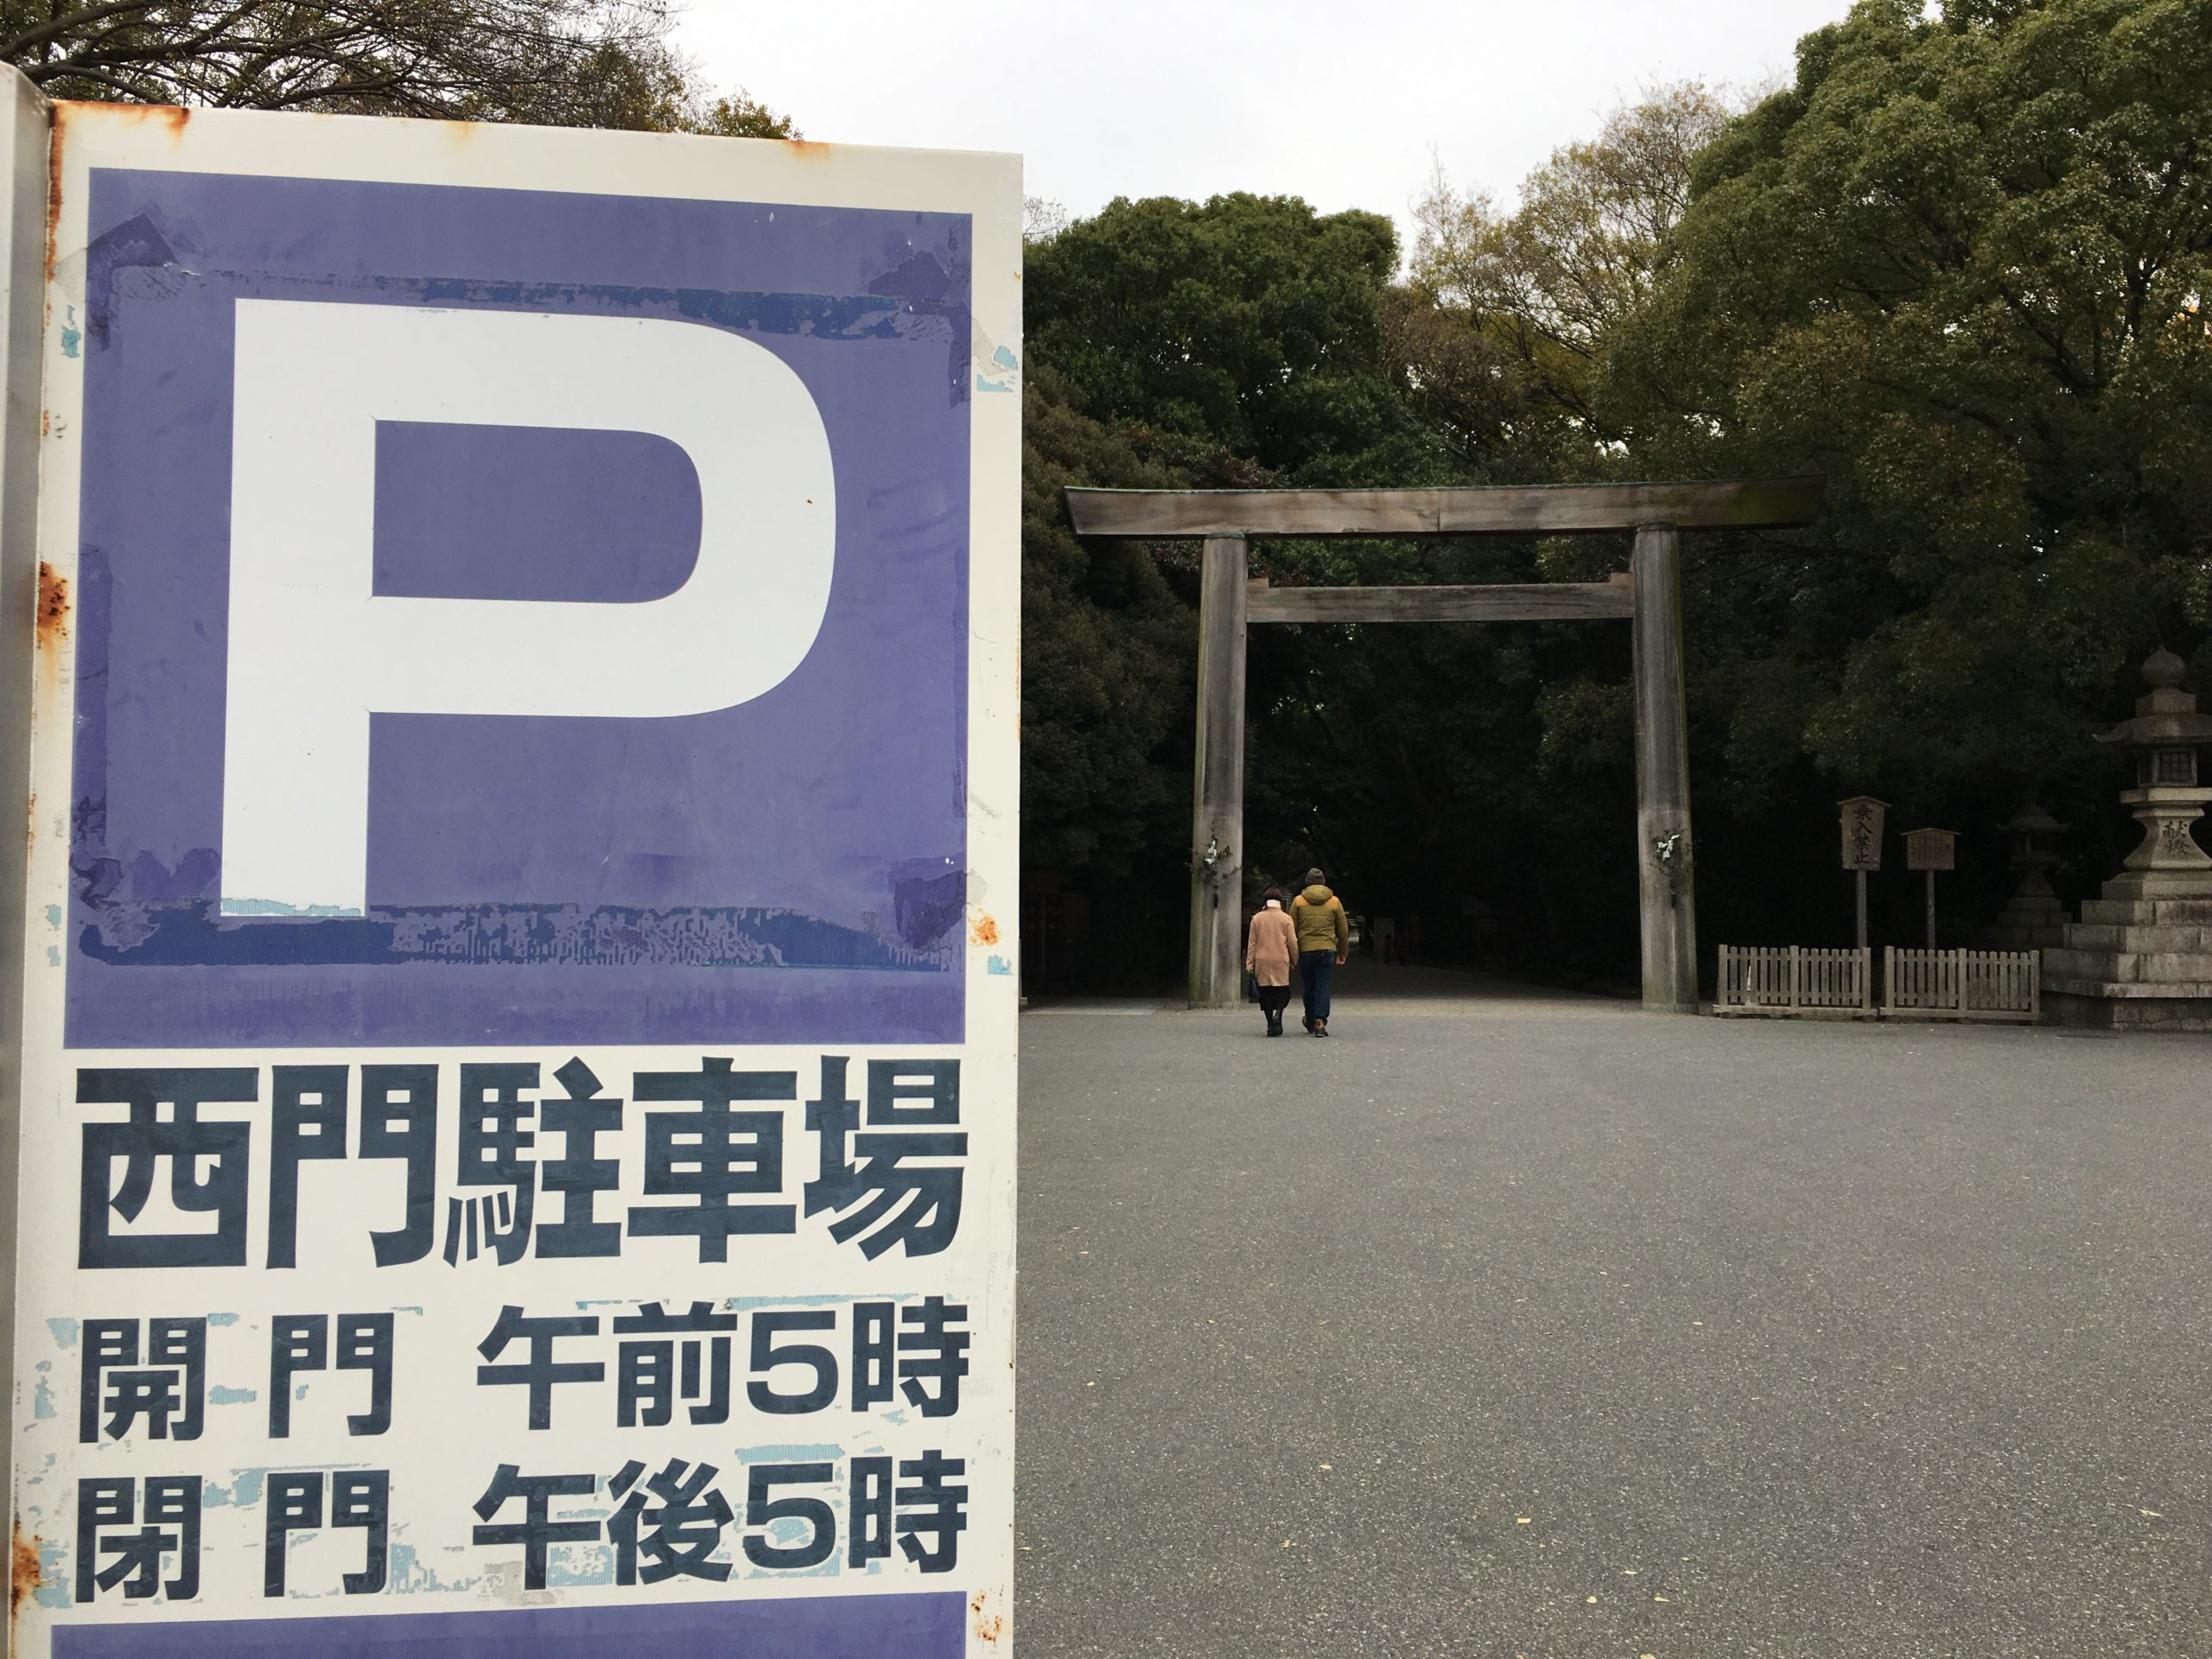 atsuta-jingu-parking